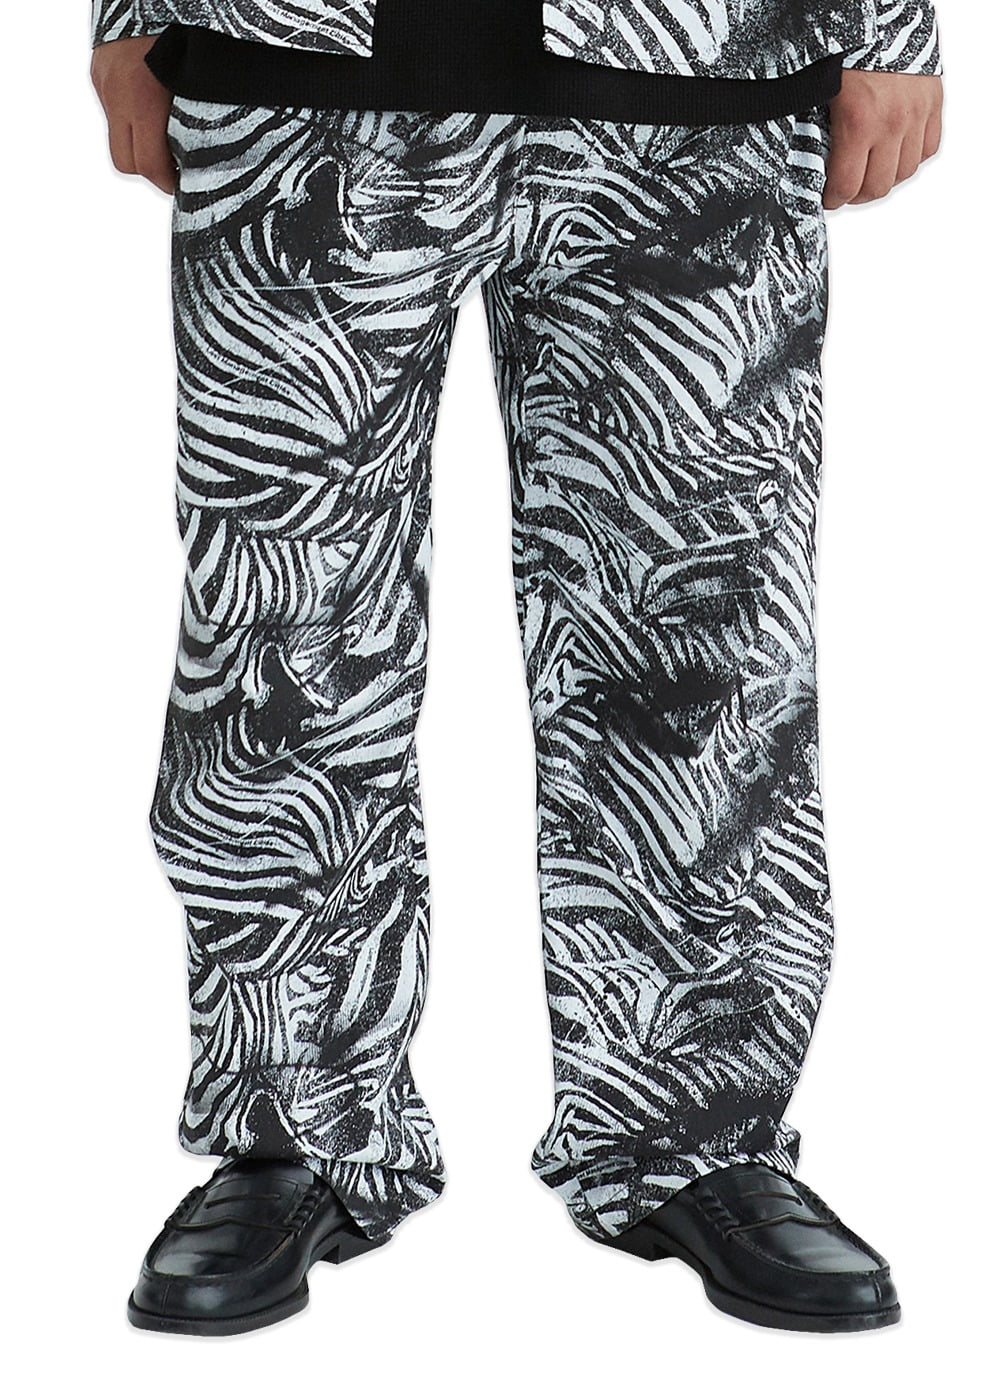 LMC ZEBRA AIRBRUSH EASY PANTS off white